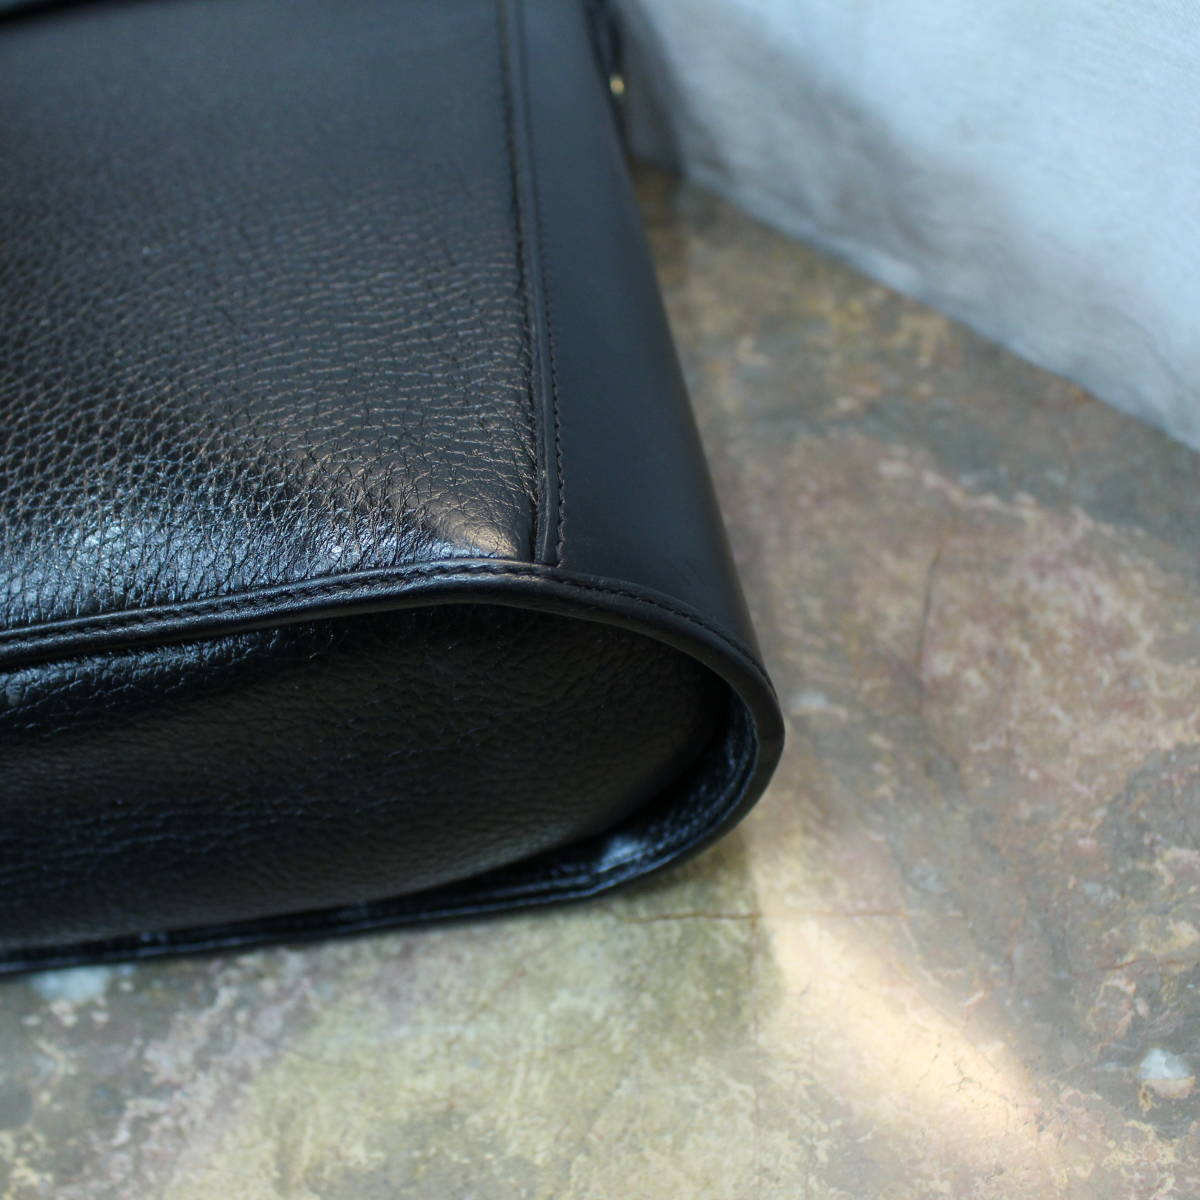 Christian Dior LEATHER SHOULDER BAG MADE IN FRANCE/クリスチャンディオールレザーショルダーバッグ_画像6